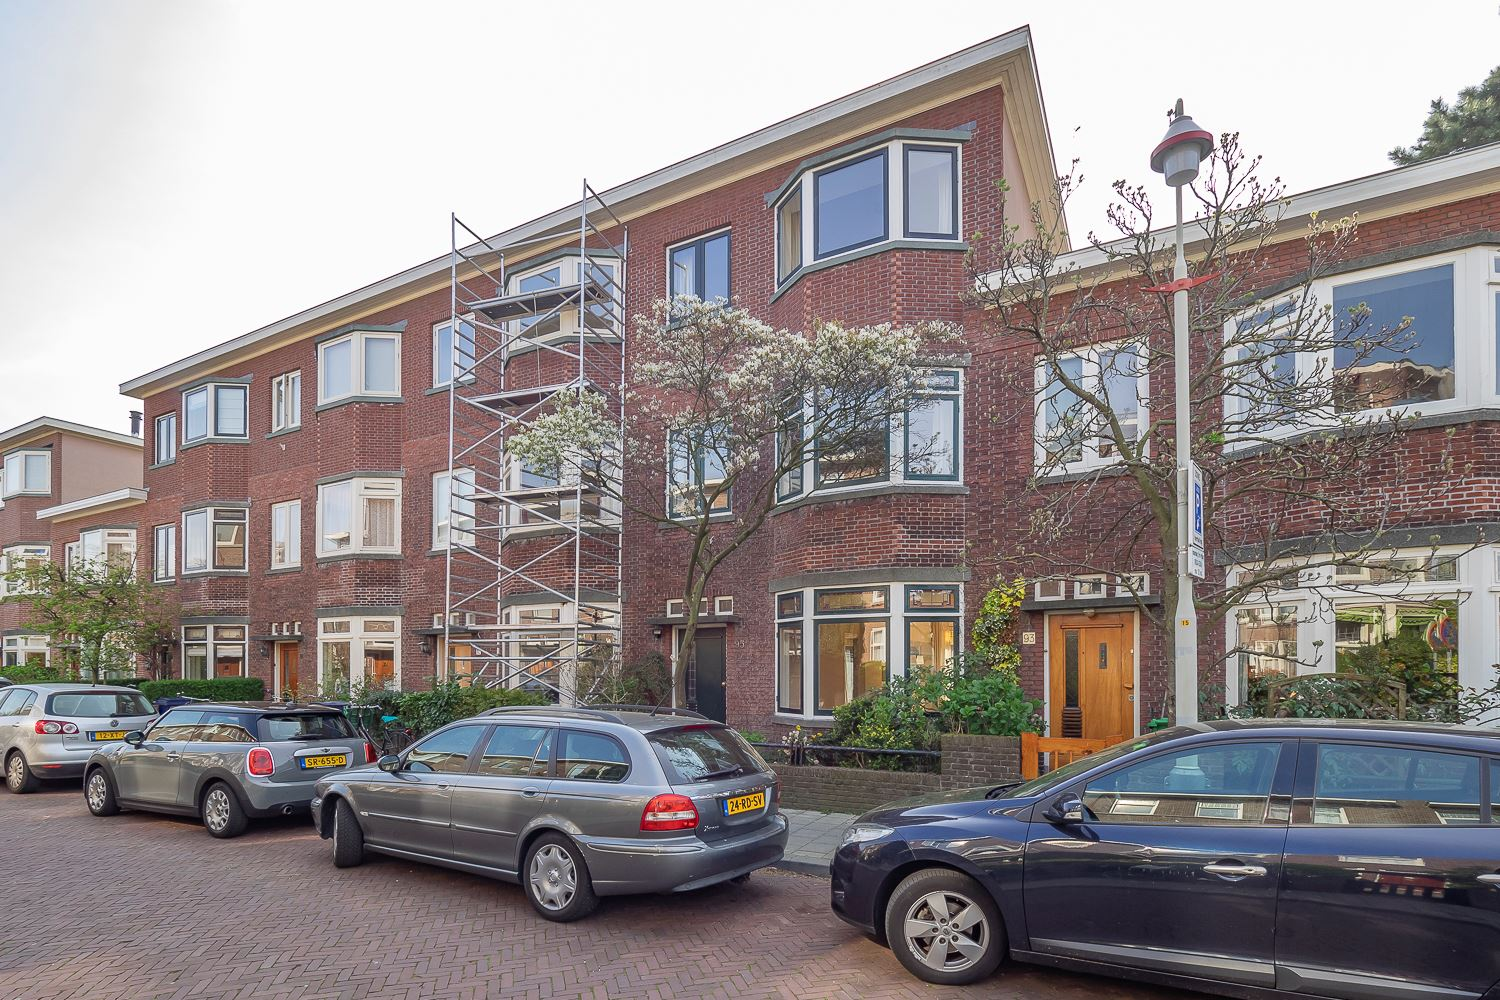 House For Sale Van Nijenrodestraat 95 2597 Rl Den Haag Funda